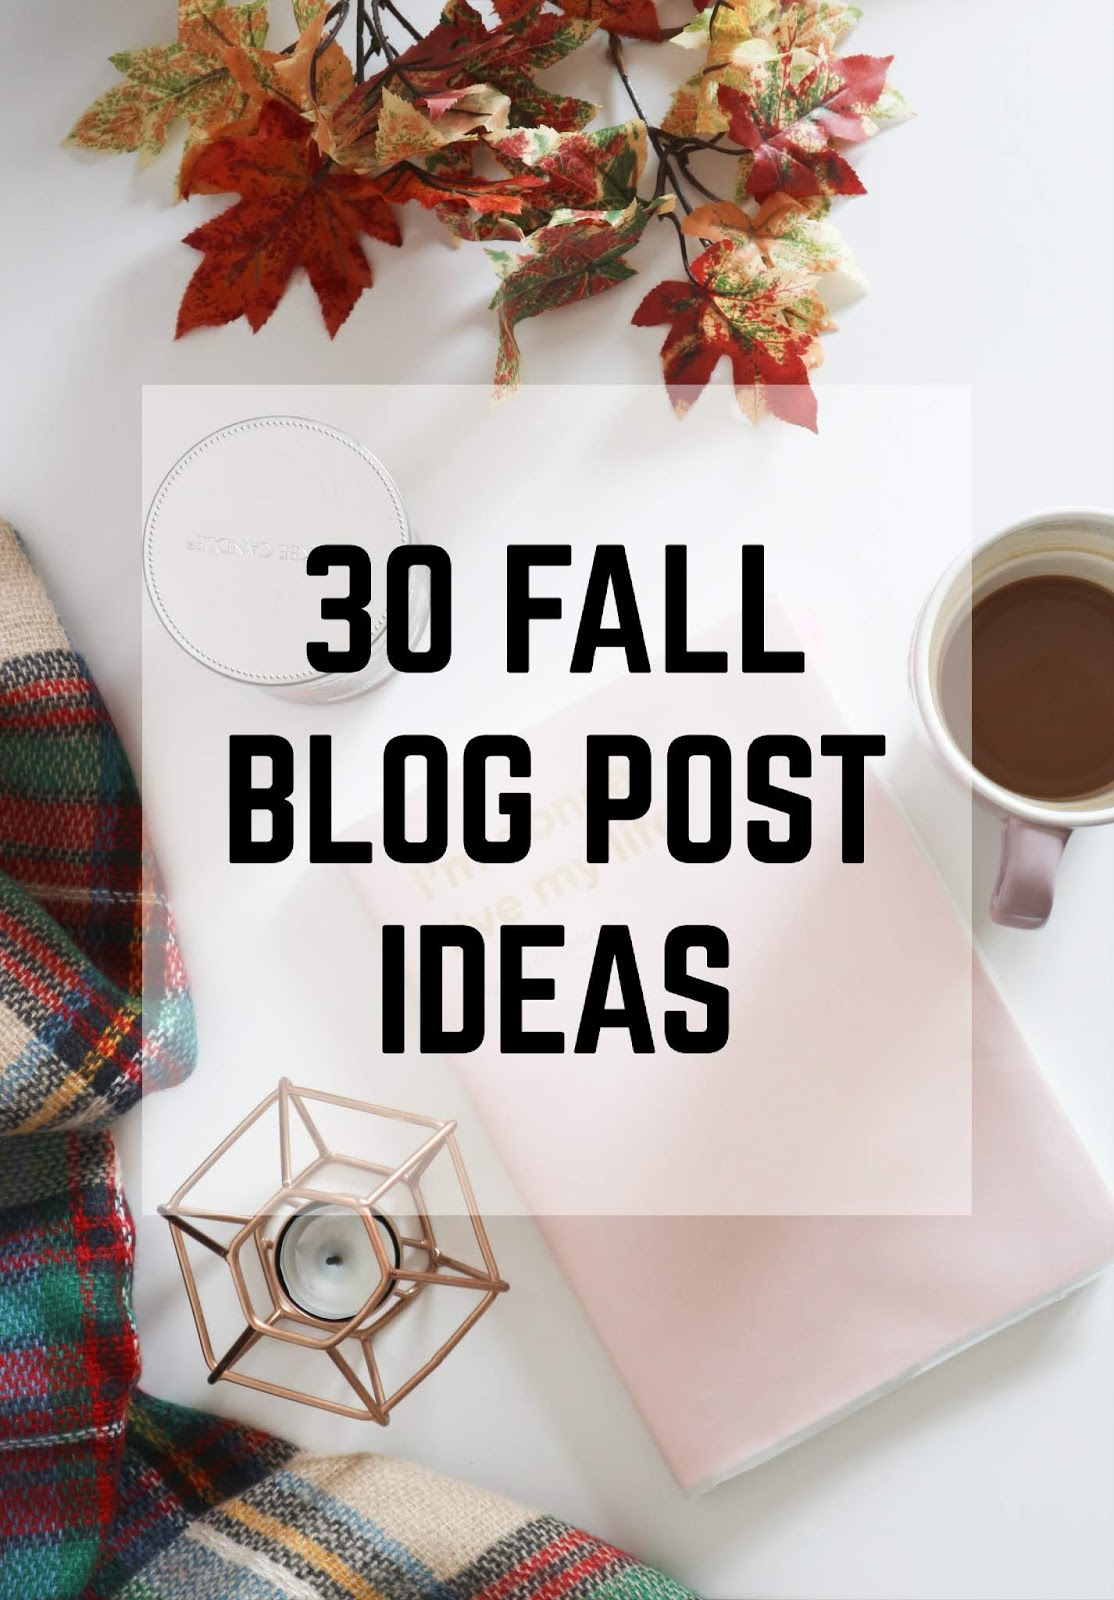 30 fall blog post ideas for fashion bloggers